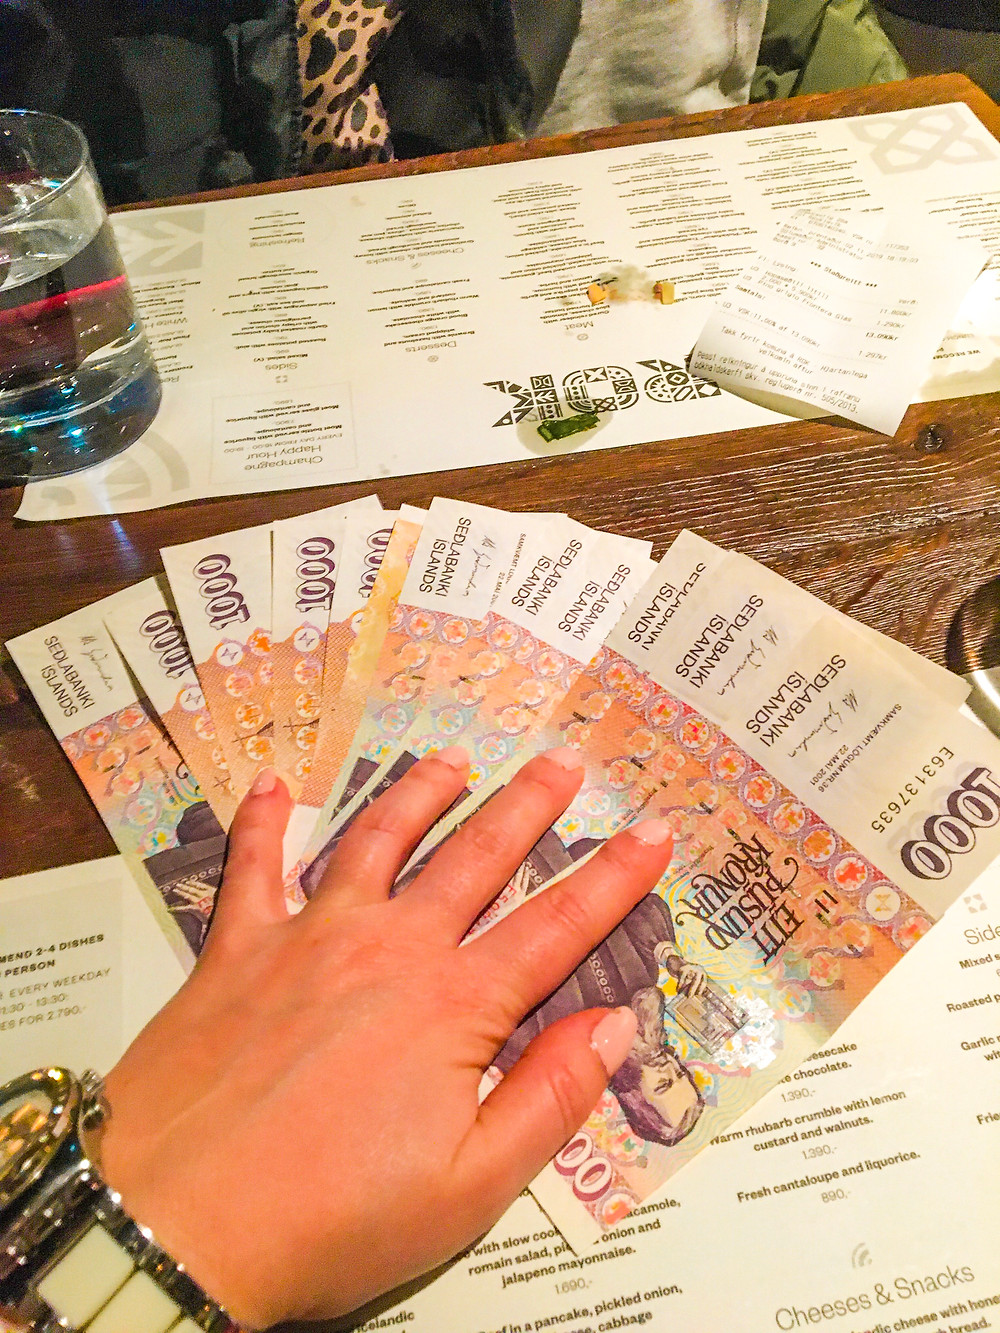 a lot of banknotes on the table hold by a woman's hand, scene in the restaurant